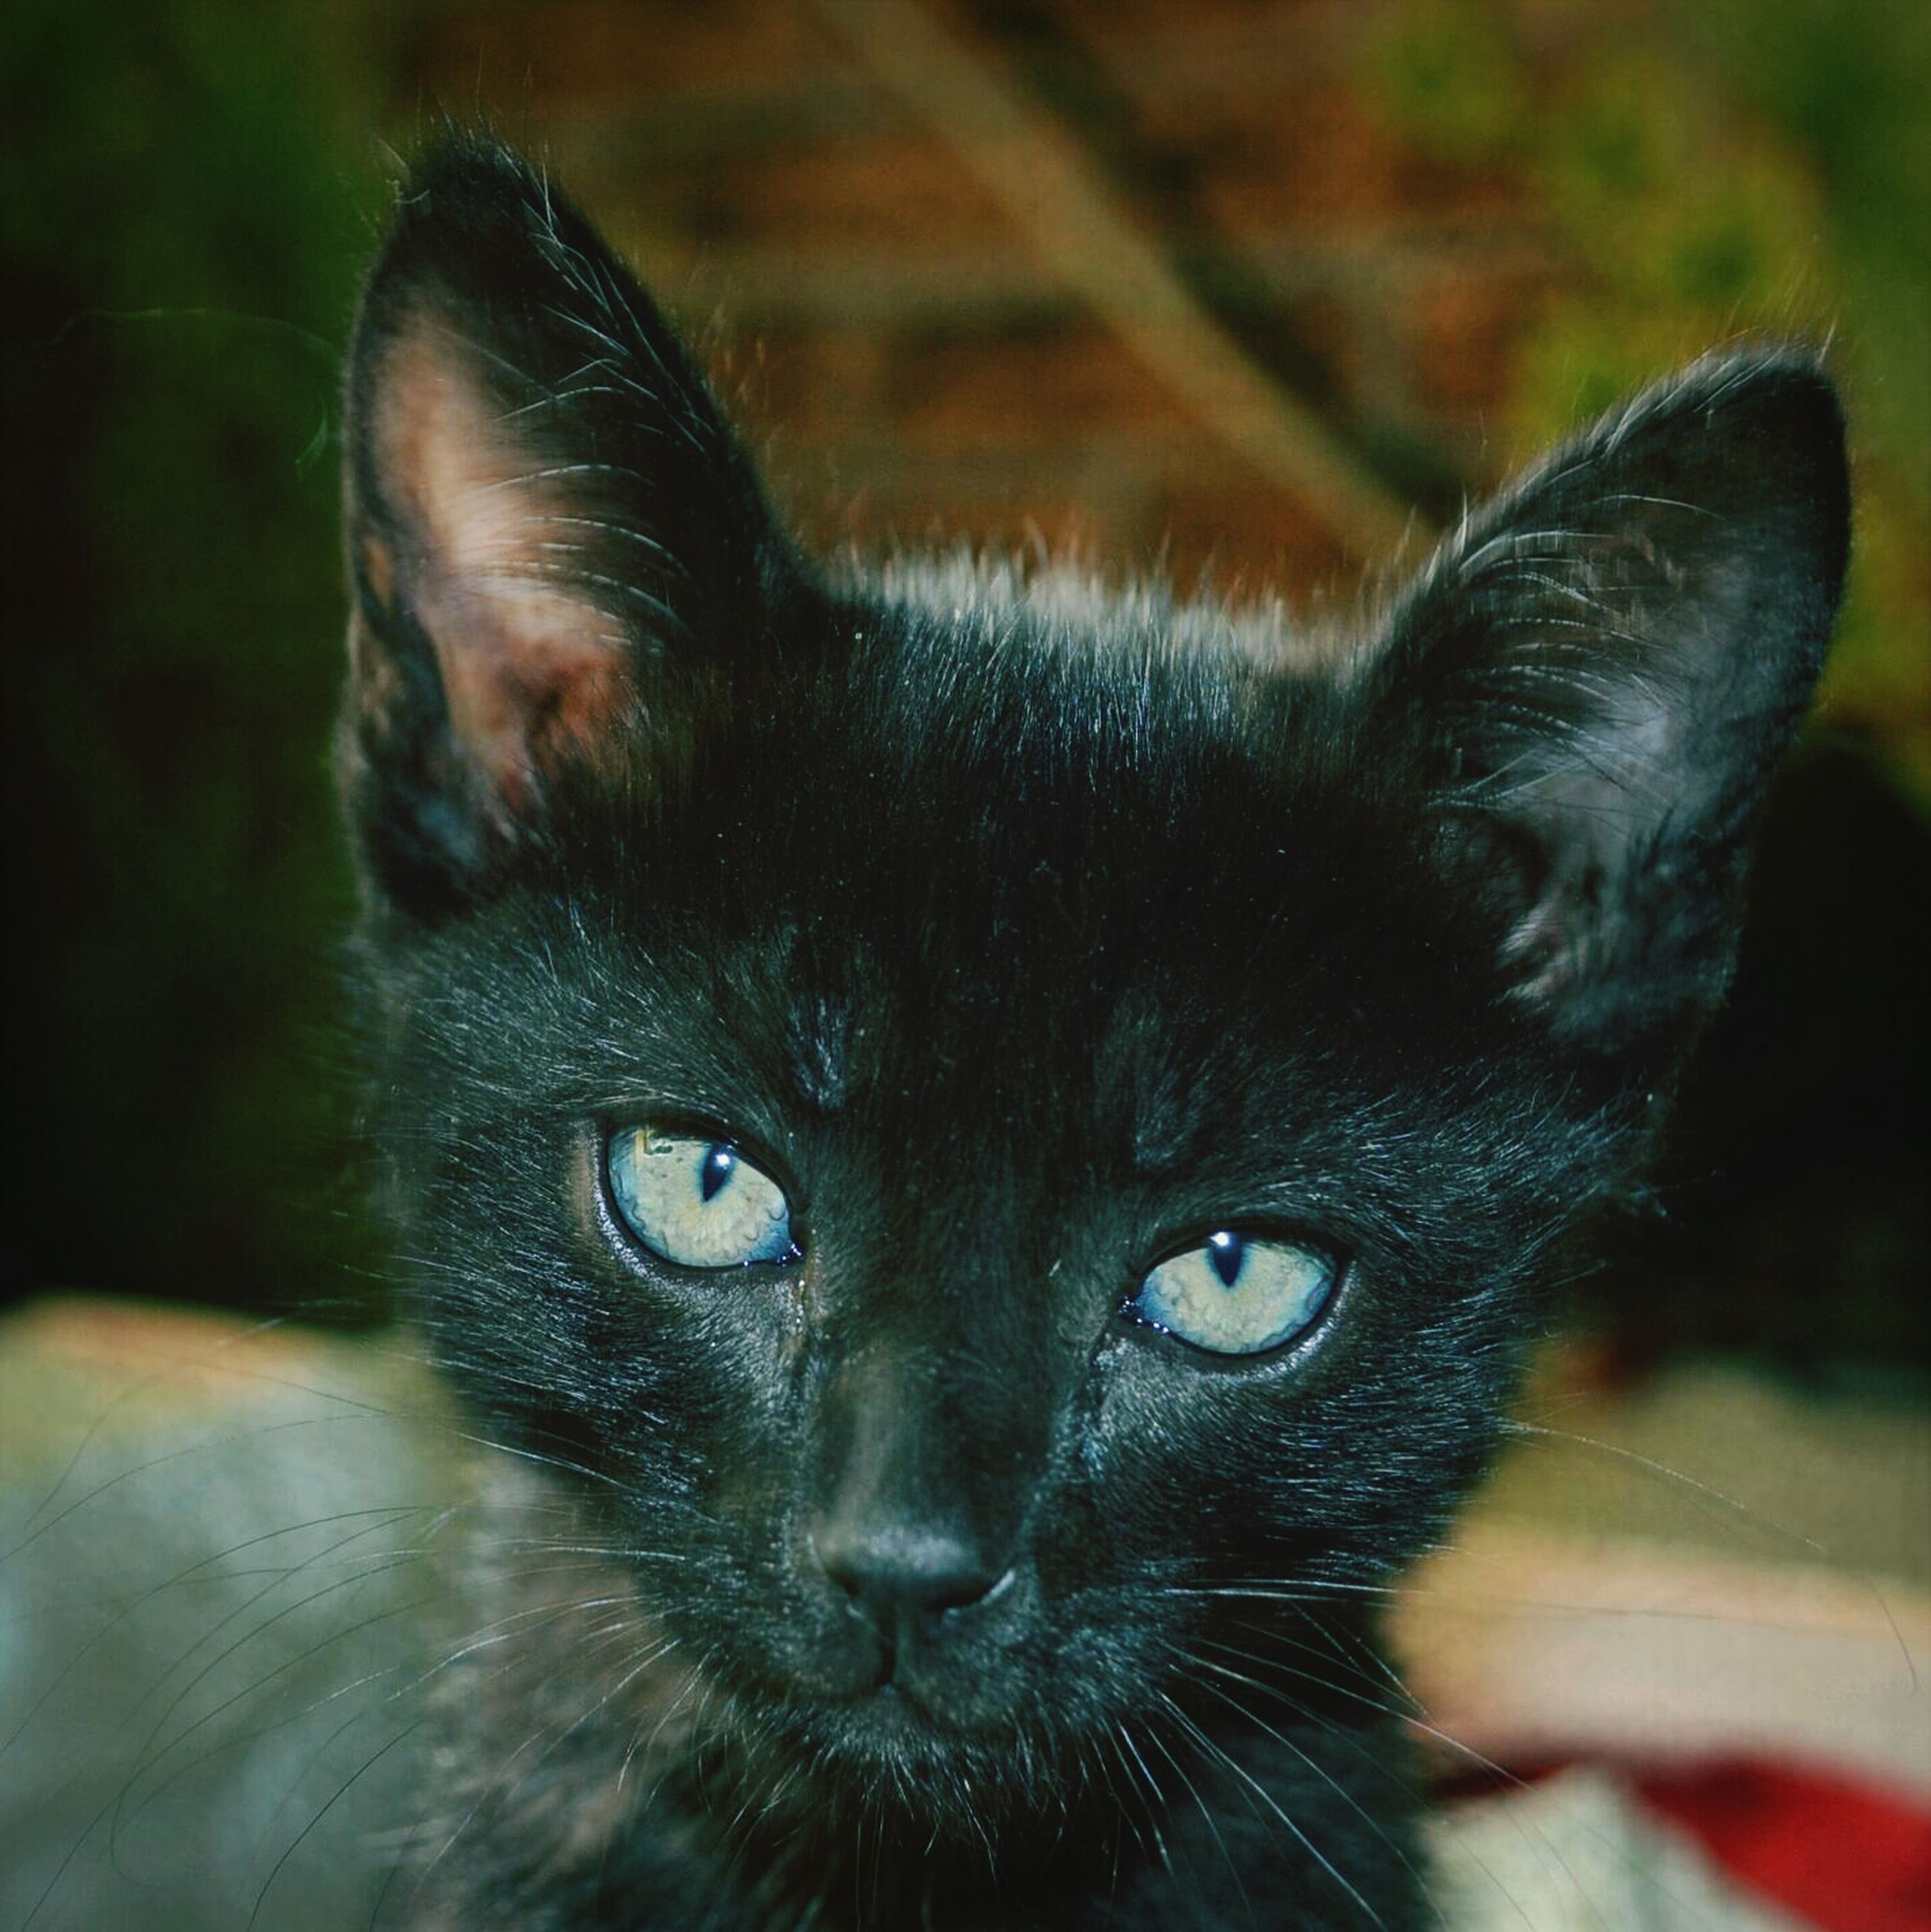 pets, domestic cat, one animal, animal themes, domestic animals, cat, mammal, whisker, feline, portrait, looking at camera, close-up, focus on foreground, black color, indoors, staring, animal head, alertness, animal eye